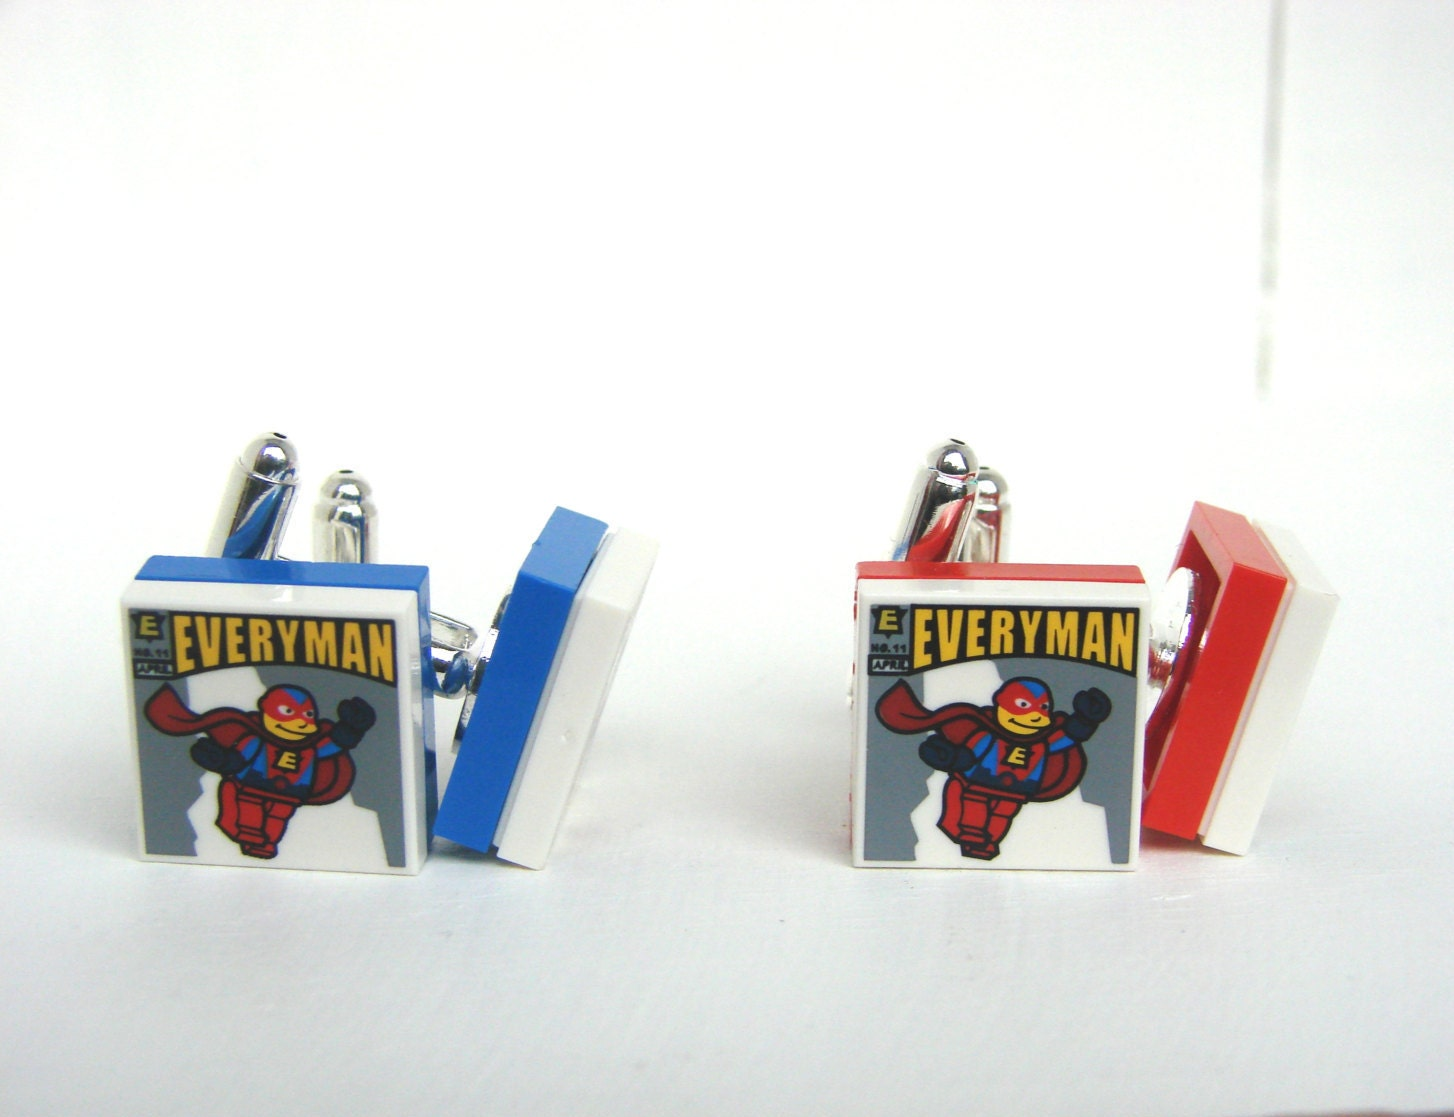 LEGO(R) Simpsons Superhero Comic Silver plated Handmade Cuff Links. Great gift for any LEGO(R) lovers. Gifts for Men Novelty.